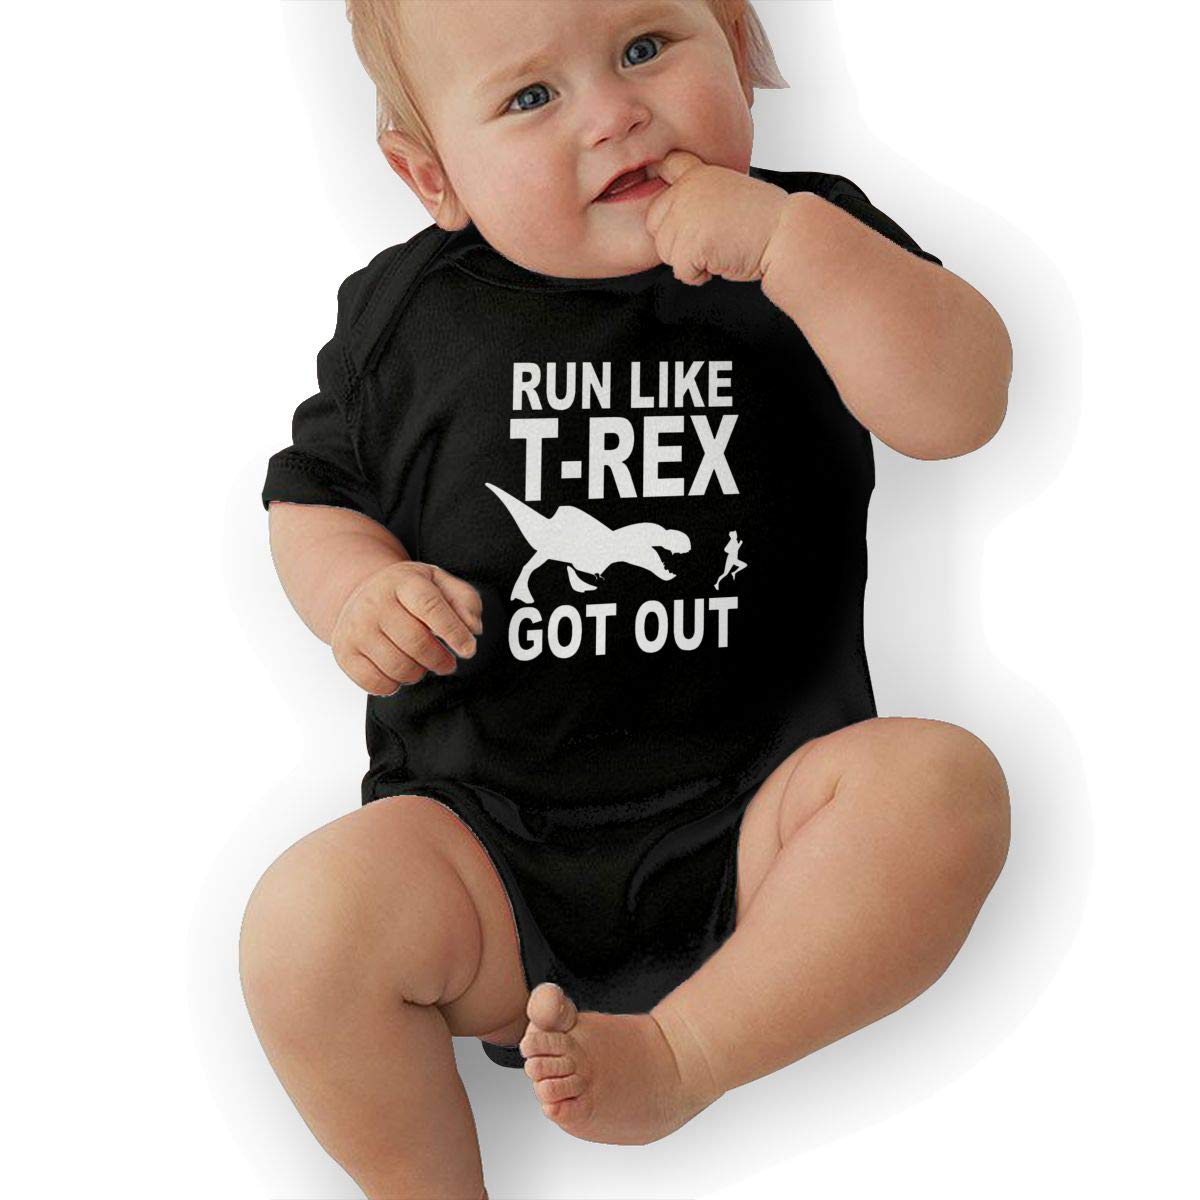 Bodysuits Clothes Onesies Jumpsuits Outfits Black Run Like T-Rex Baby Pajamas